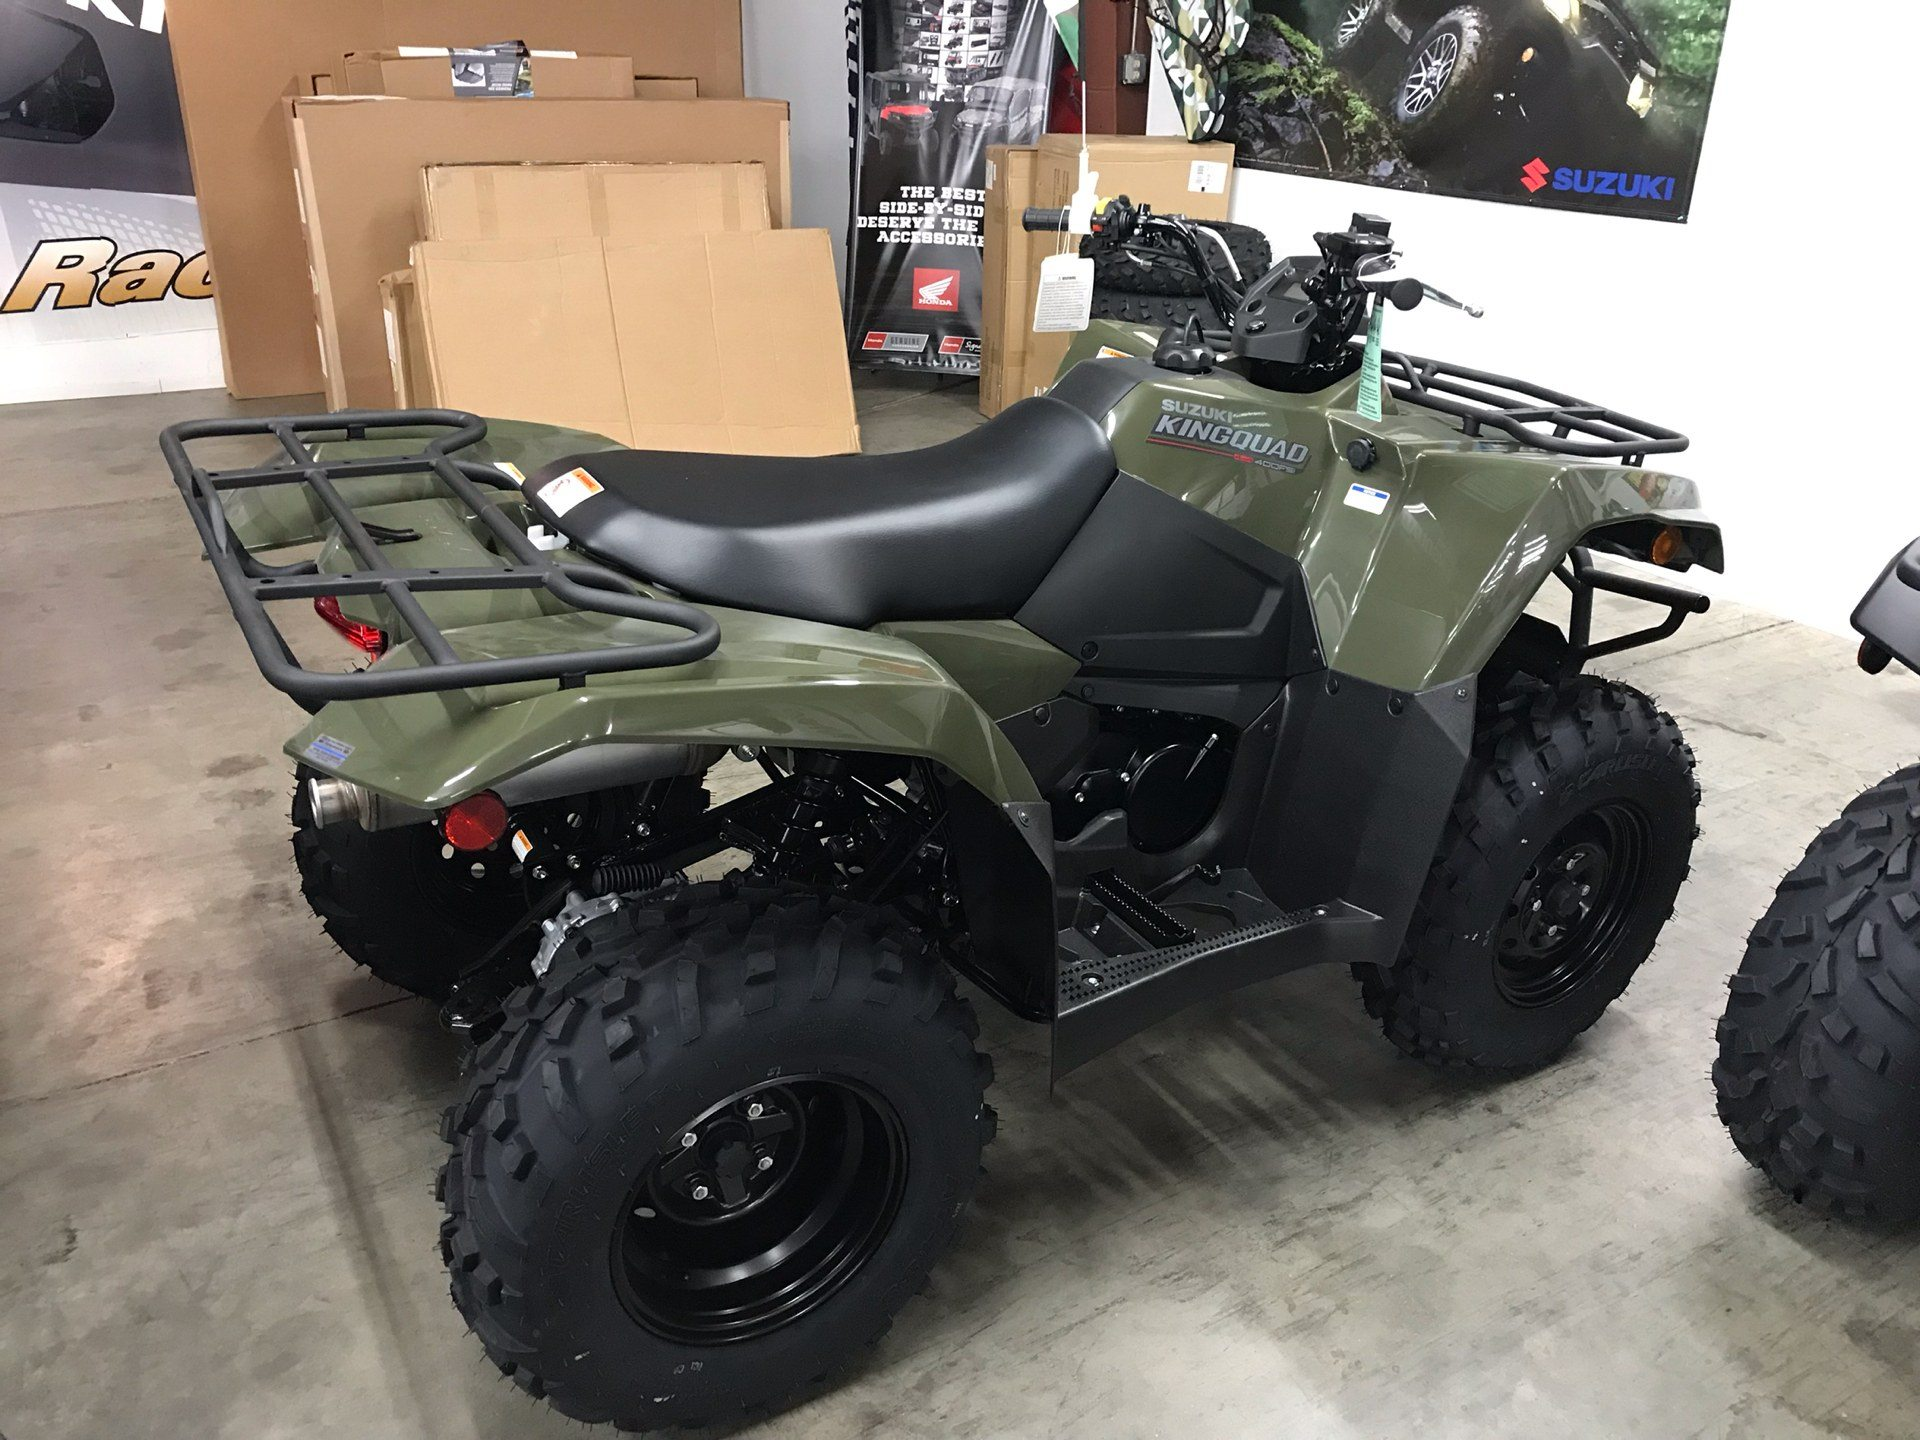 2019 Suzuki KingQuad 400FSi in Sanford, North Carolina - Photo 6